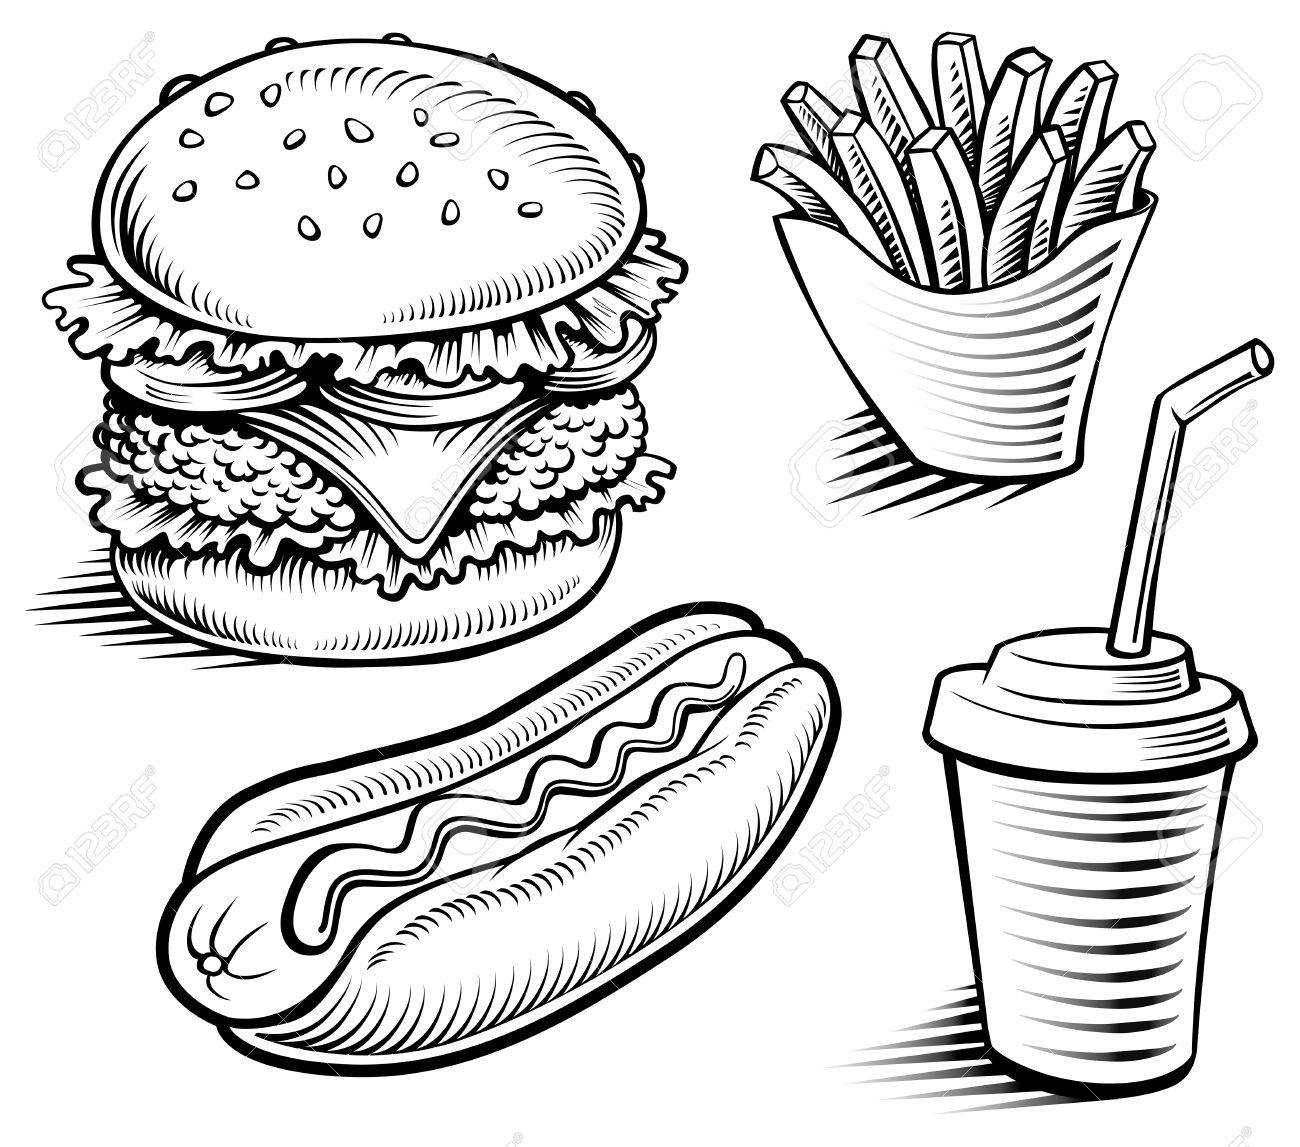 1300x1147 Fast Food Hamburger, Fries, Hotdog, Drink Hand Drawing Royalty